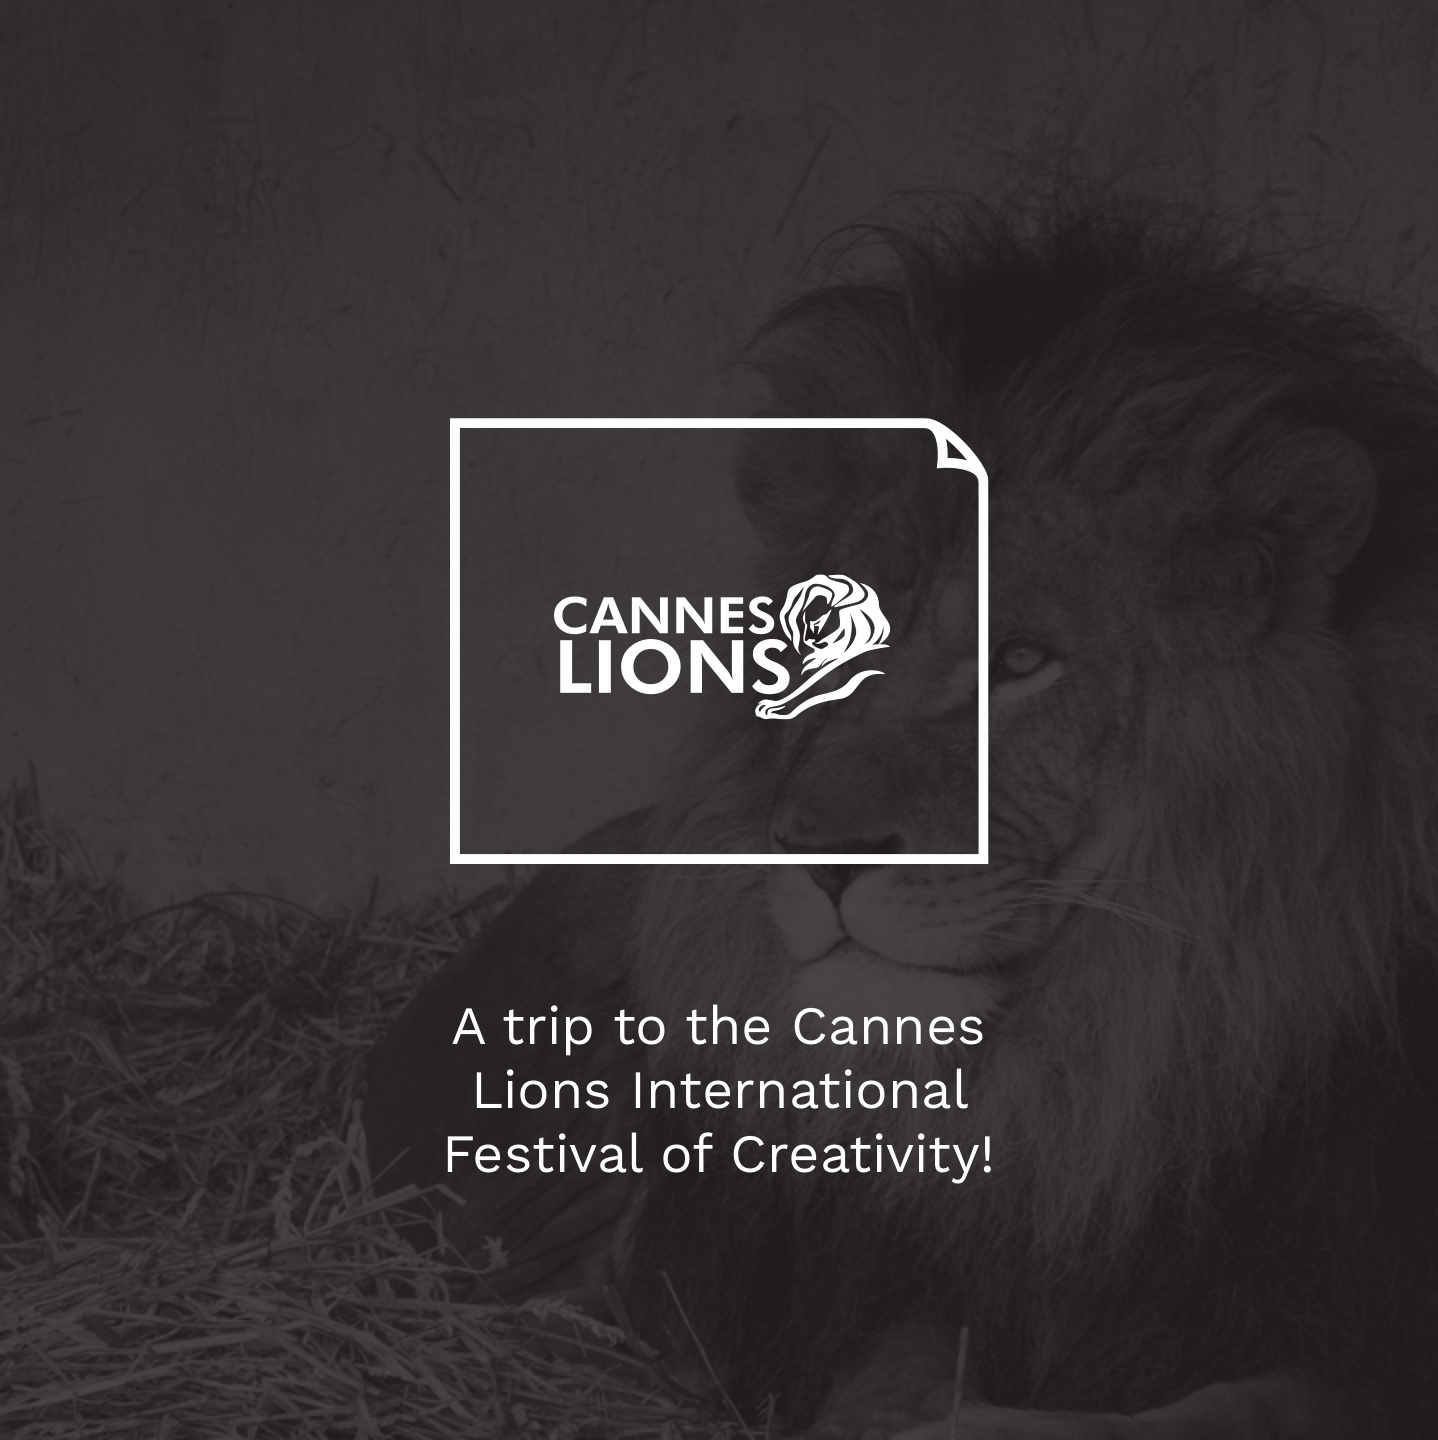 A trip to the Cannes Lions International Festival of Creativity!